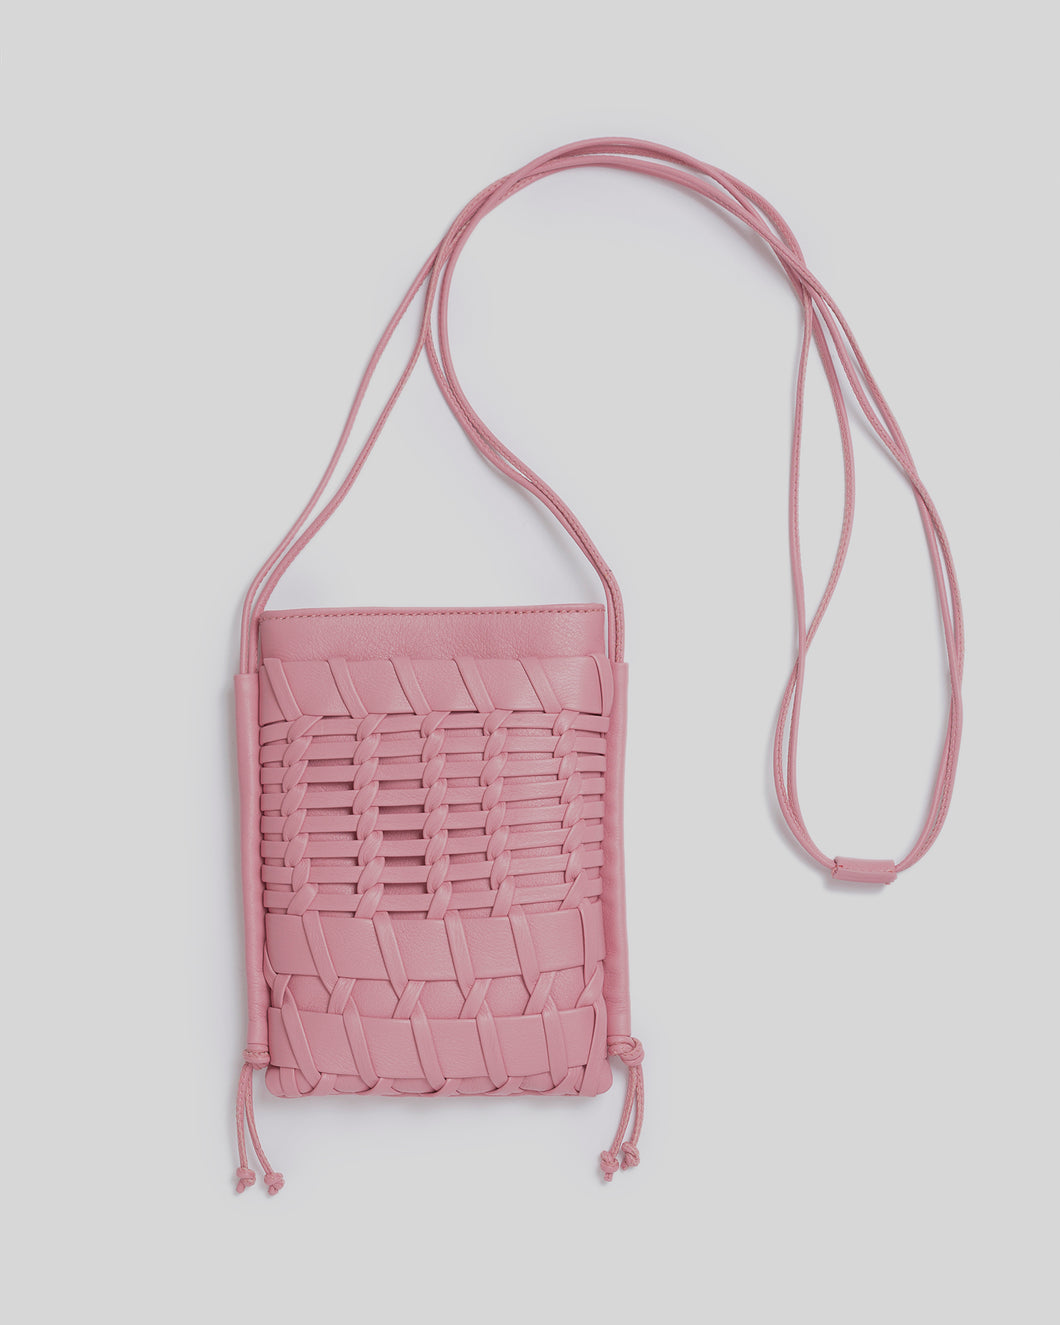 TRENA MINI - Flat Square Mini Crossbody Bag